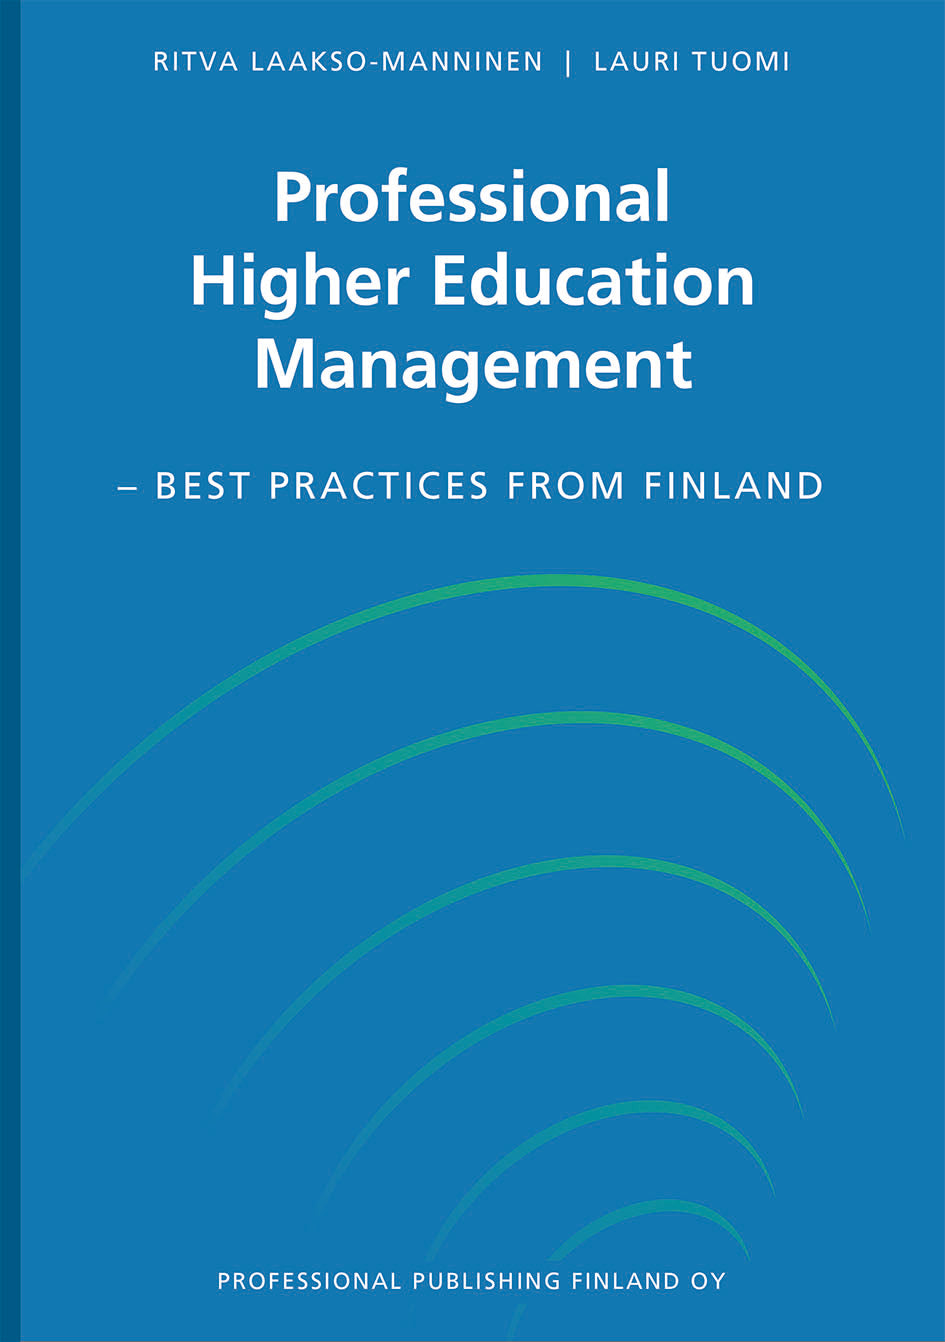 Professional Higher Education Management - Best Practices from Finland (softcover)